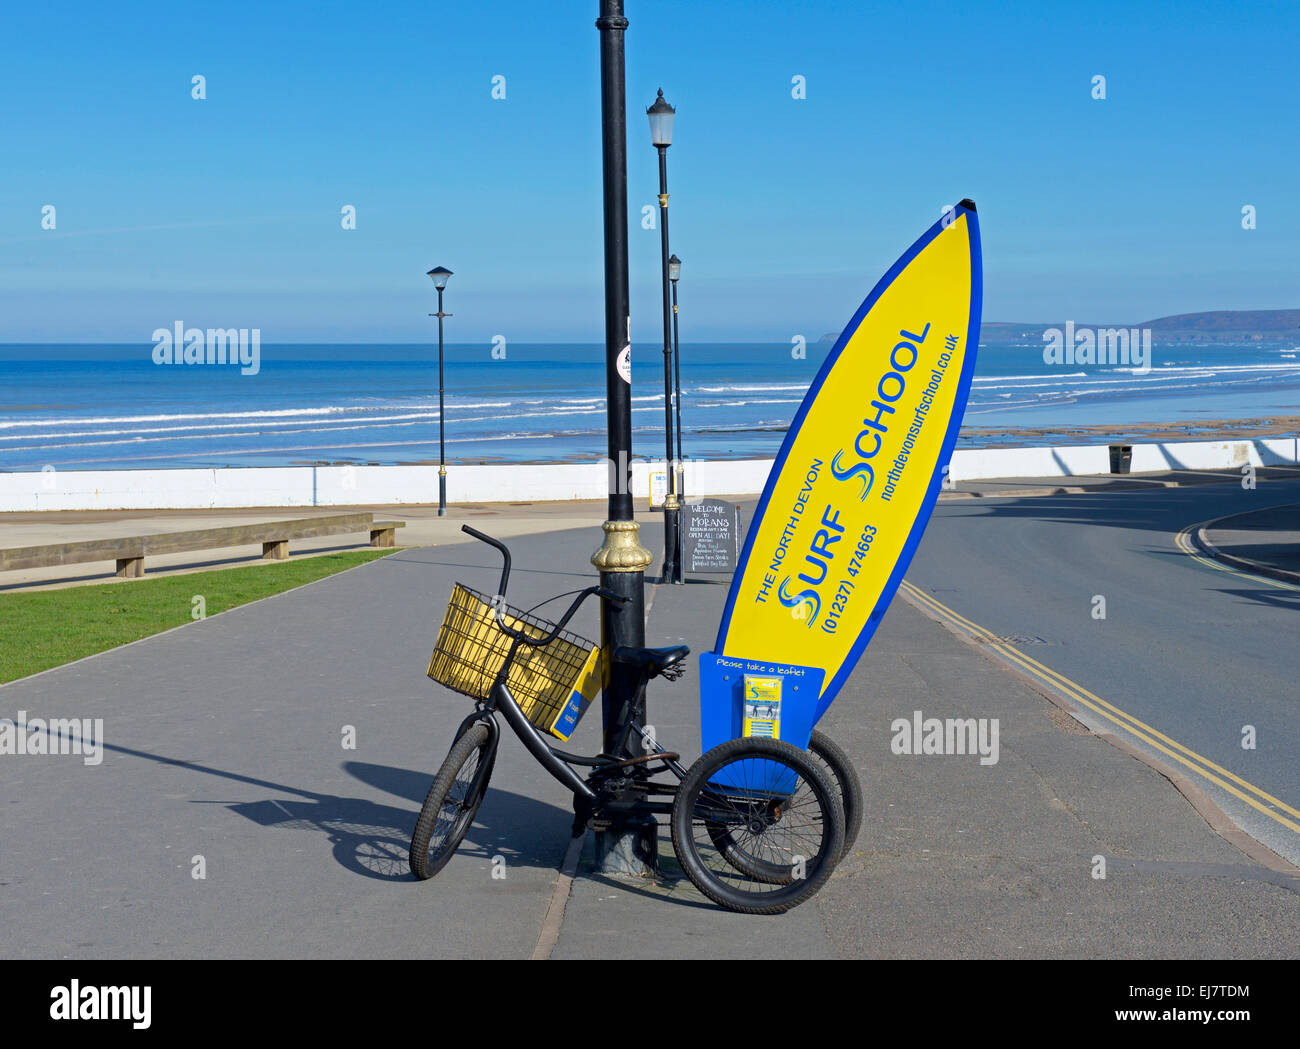 Sign for Surf School, Westward Ho!, Devon, England UK - Stock Image